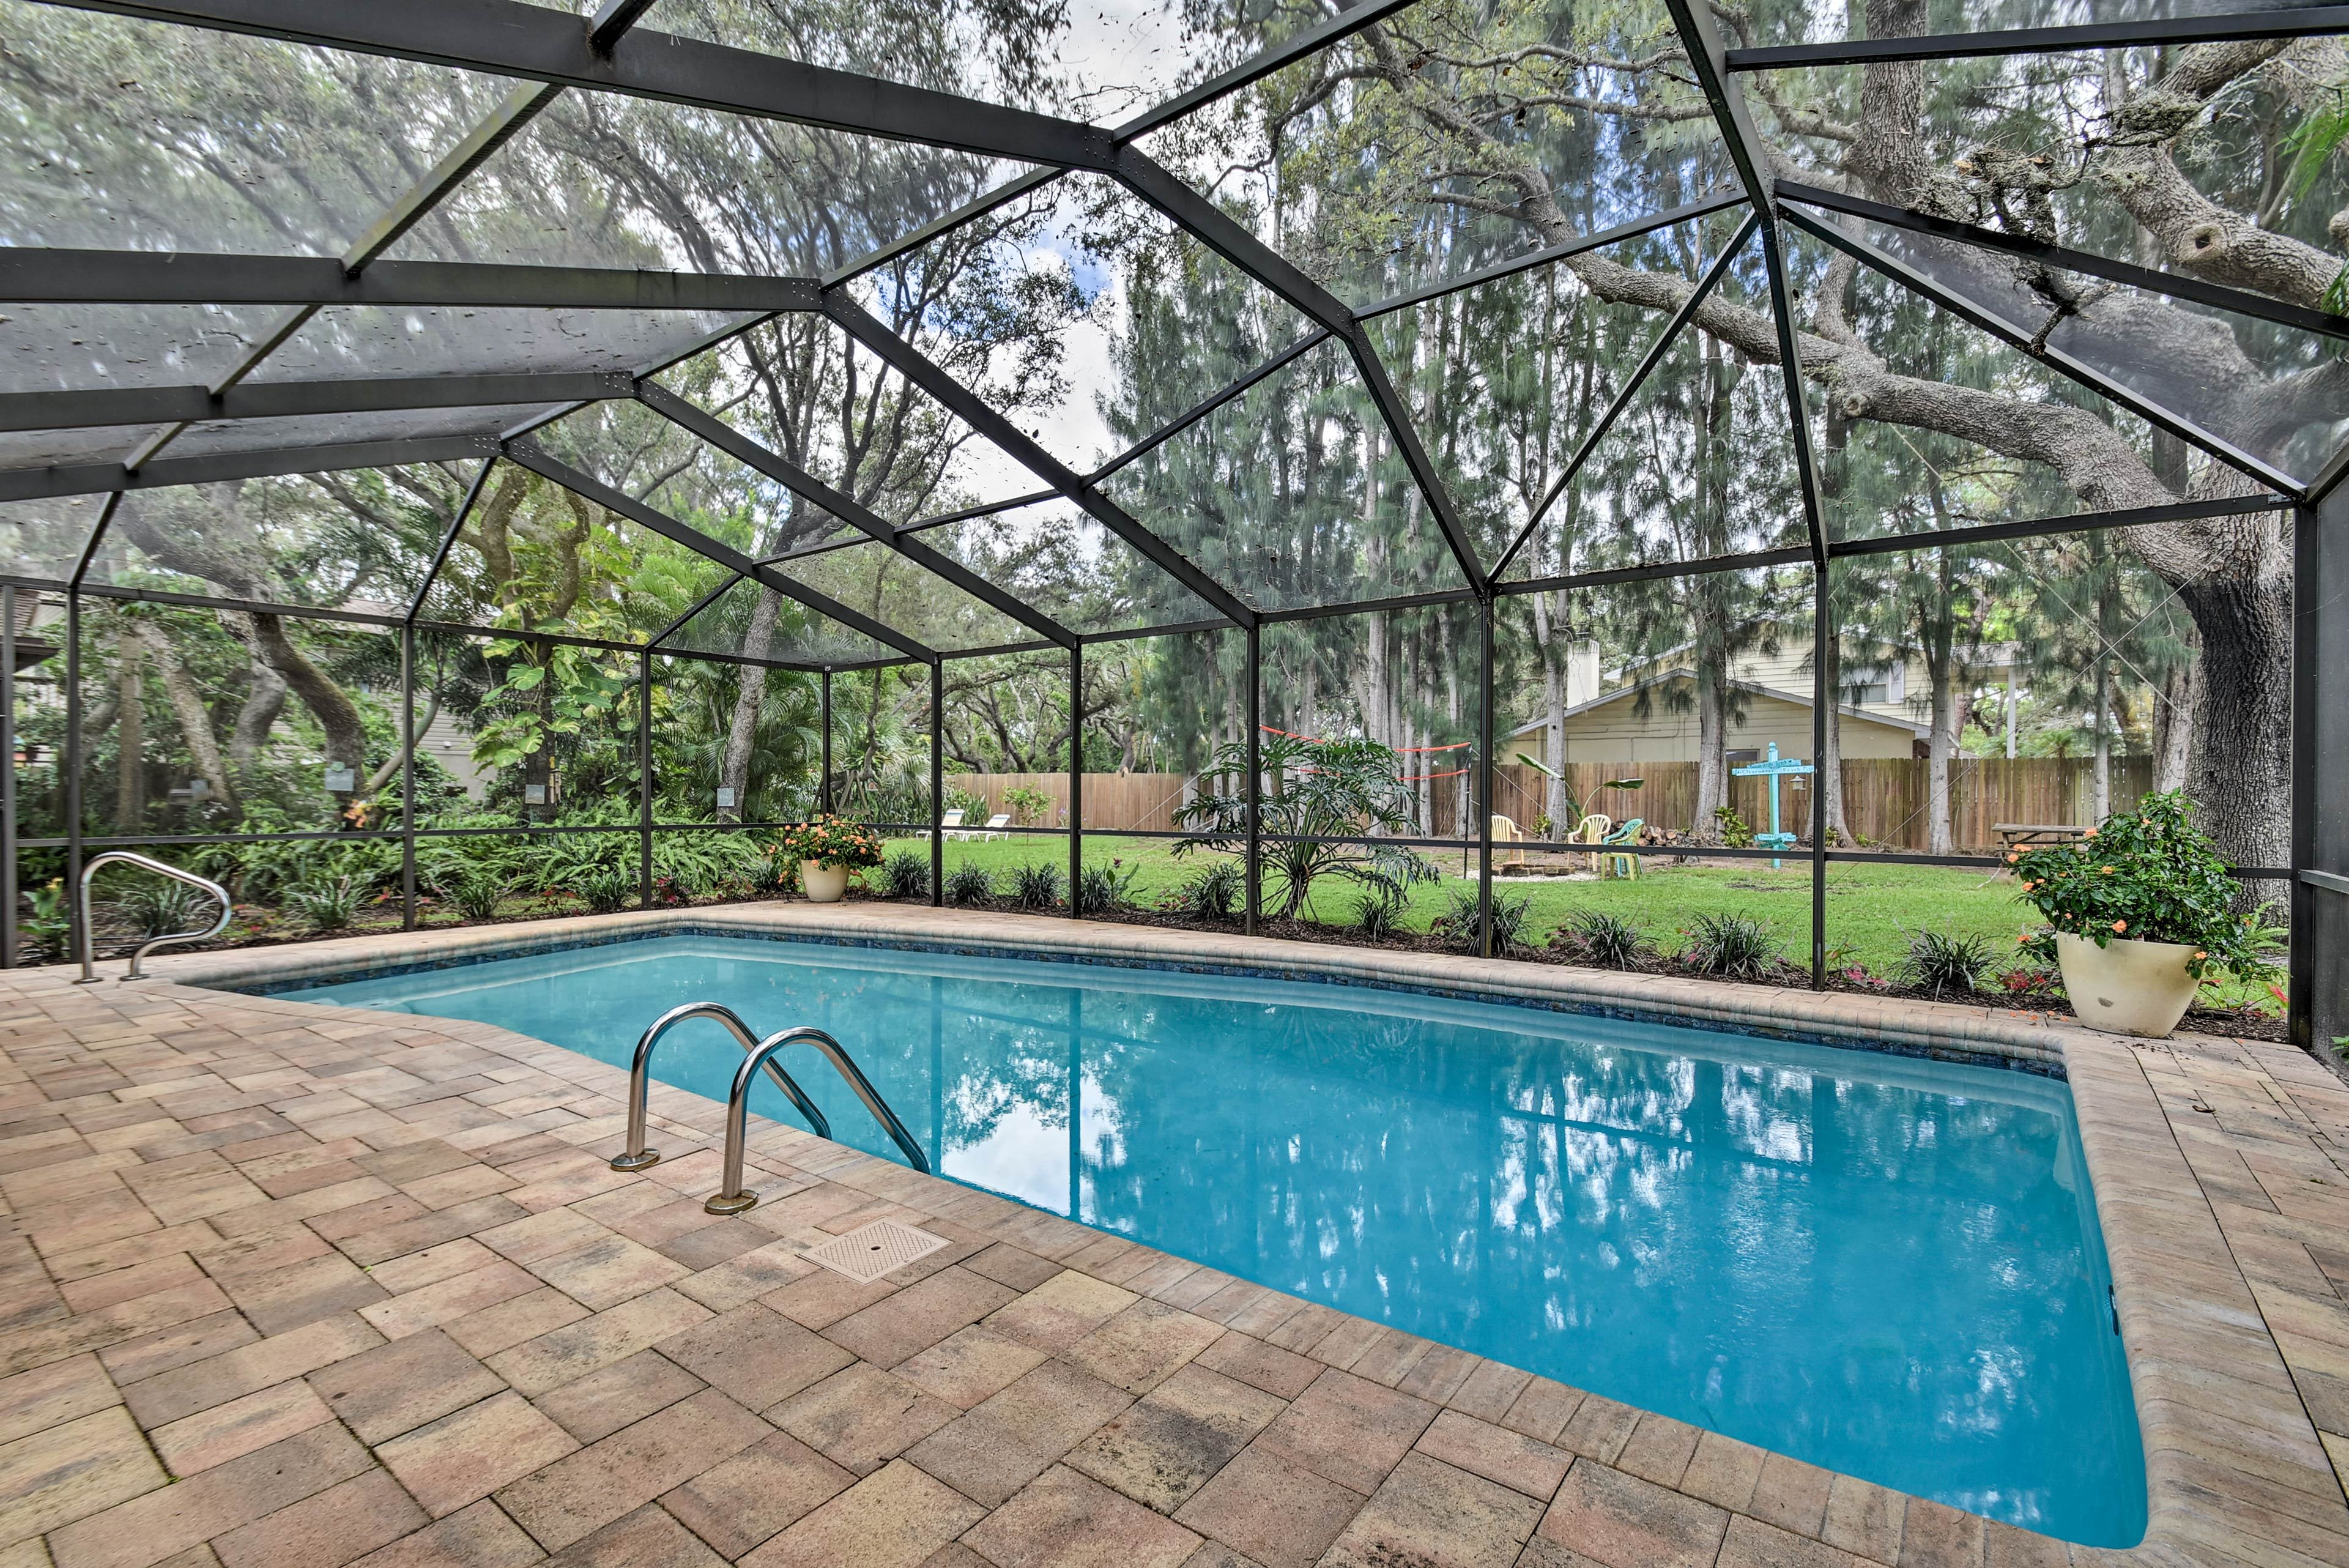 Let the kids take a dip in the large pool covered by a lanai.